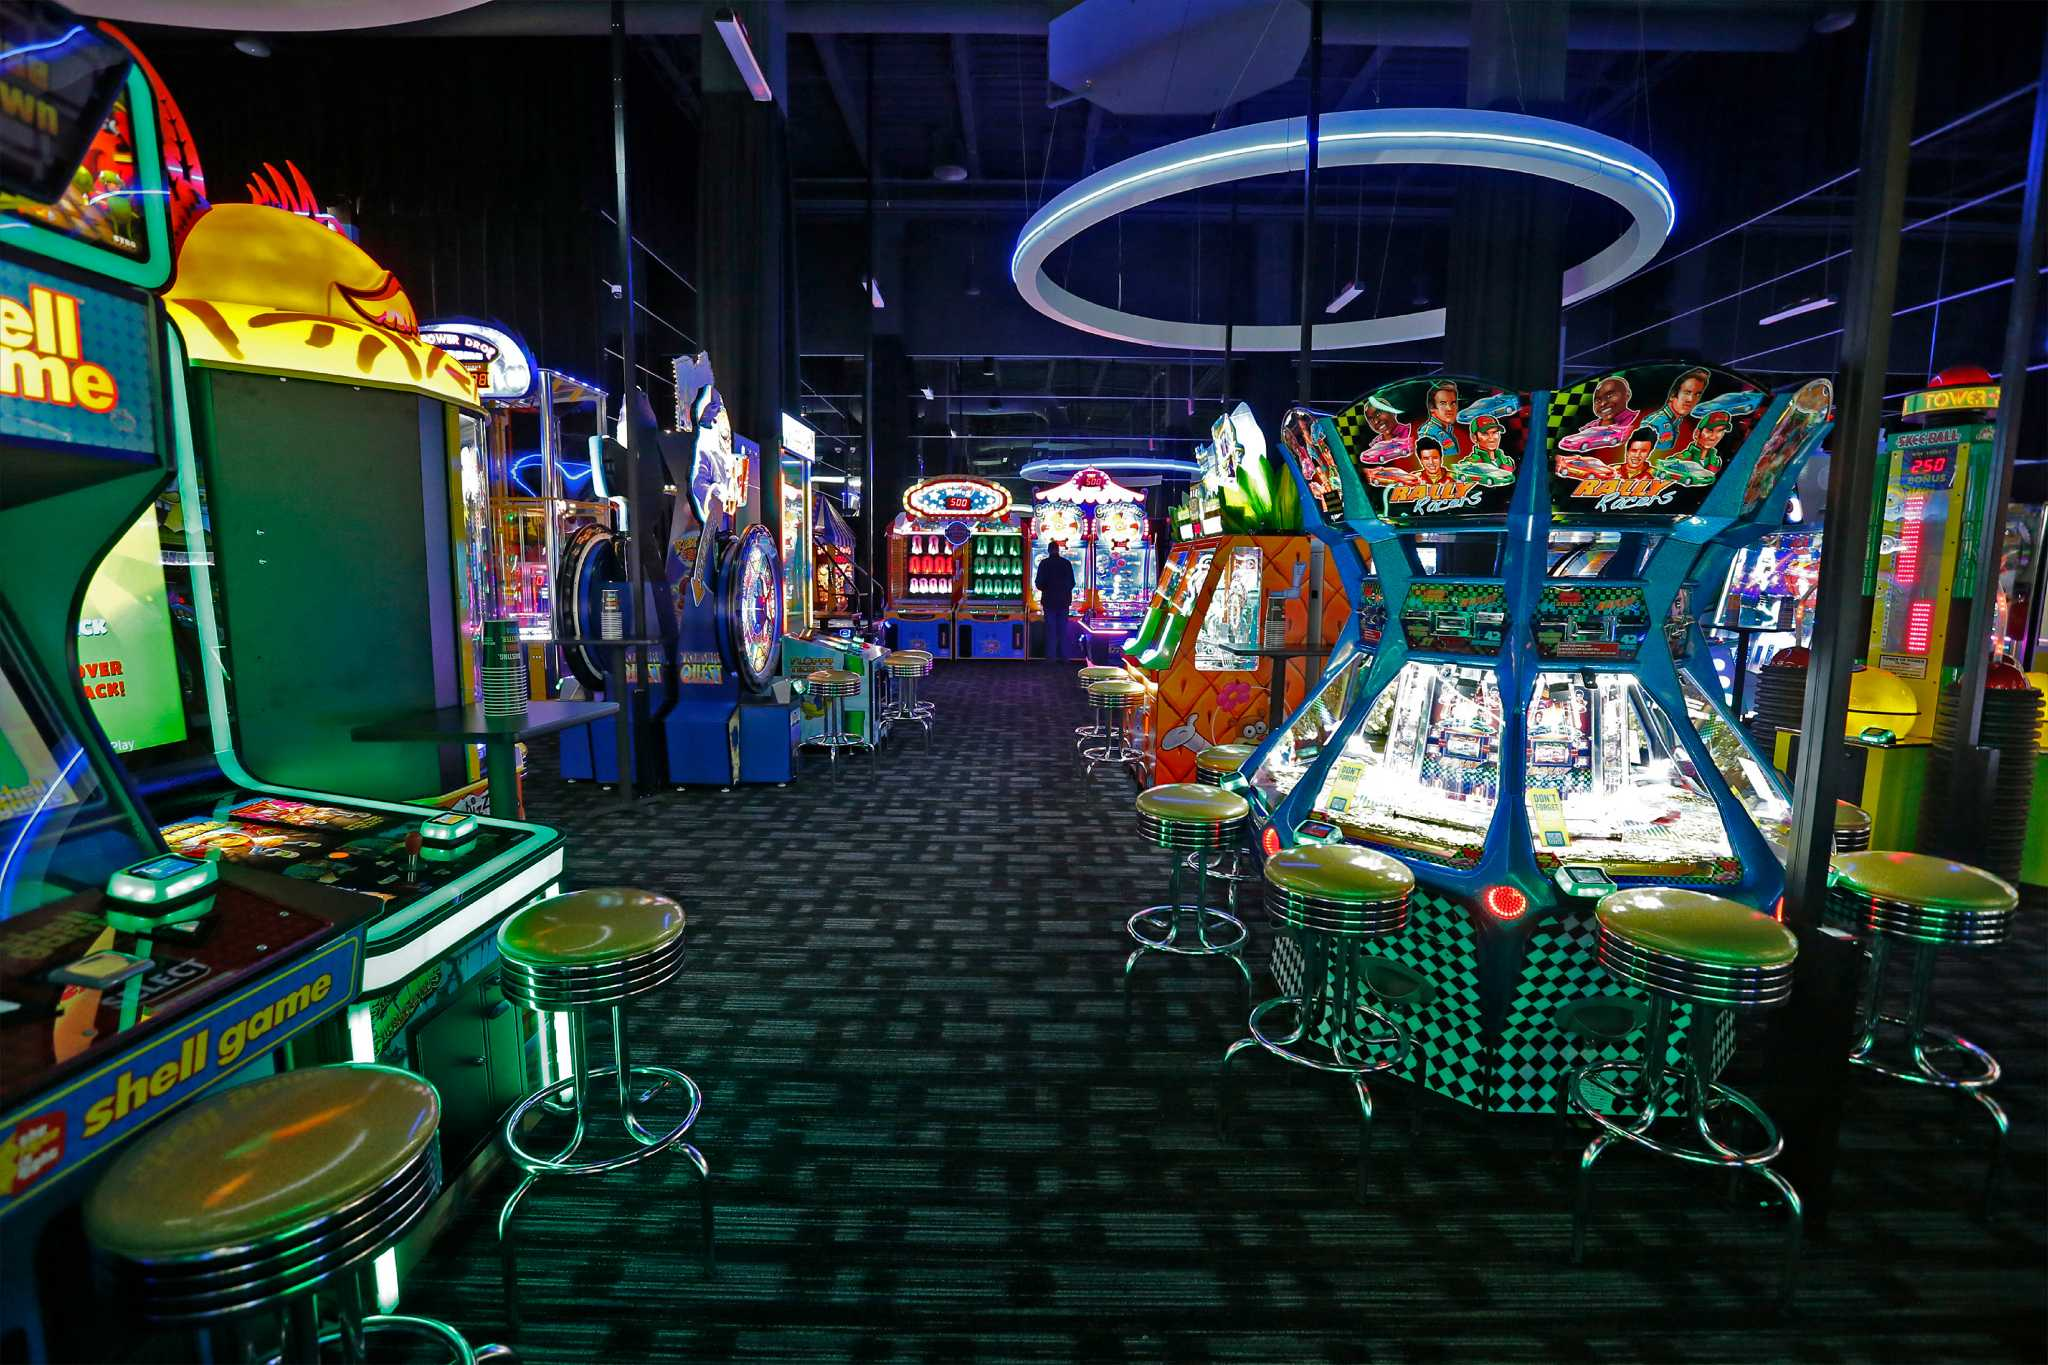 Dave & Buster's Dave & Buster's stores in Palo Alto CA - Hours, locations and phones Find here all the Dave & Buster's stores in Palo Alto CA. To access the details of the store (locations, store hours, website and current deals) click on the location or the store name.